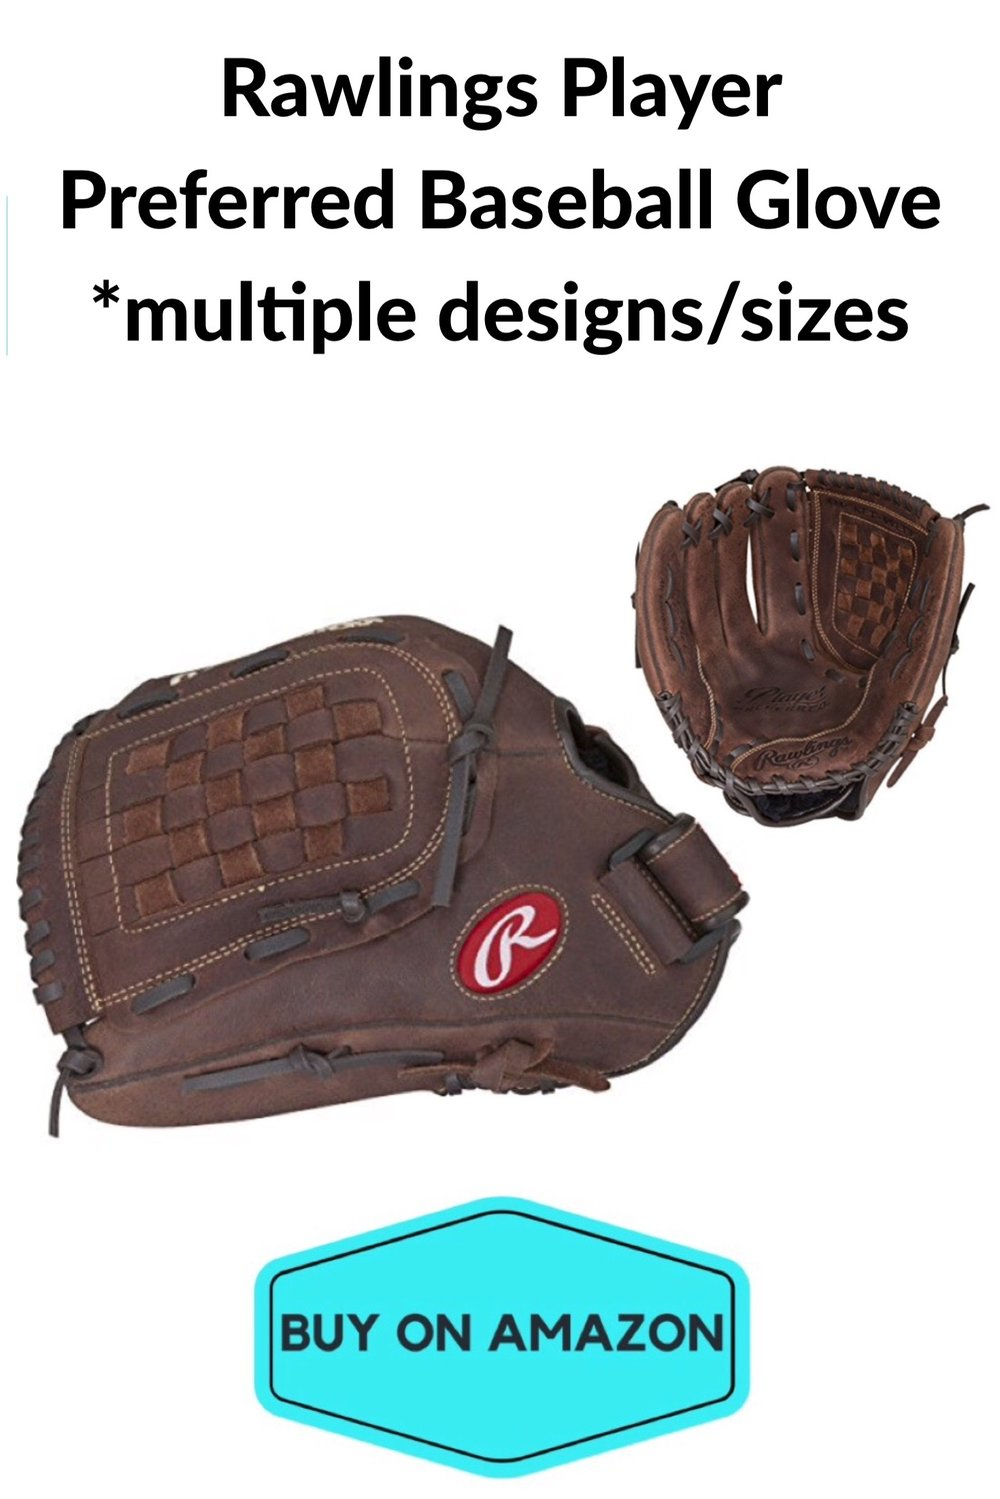 Rawlings Player Preferred Baseball Glove